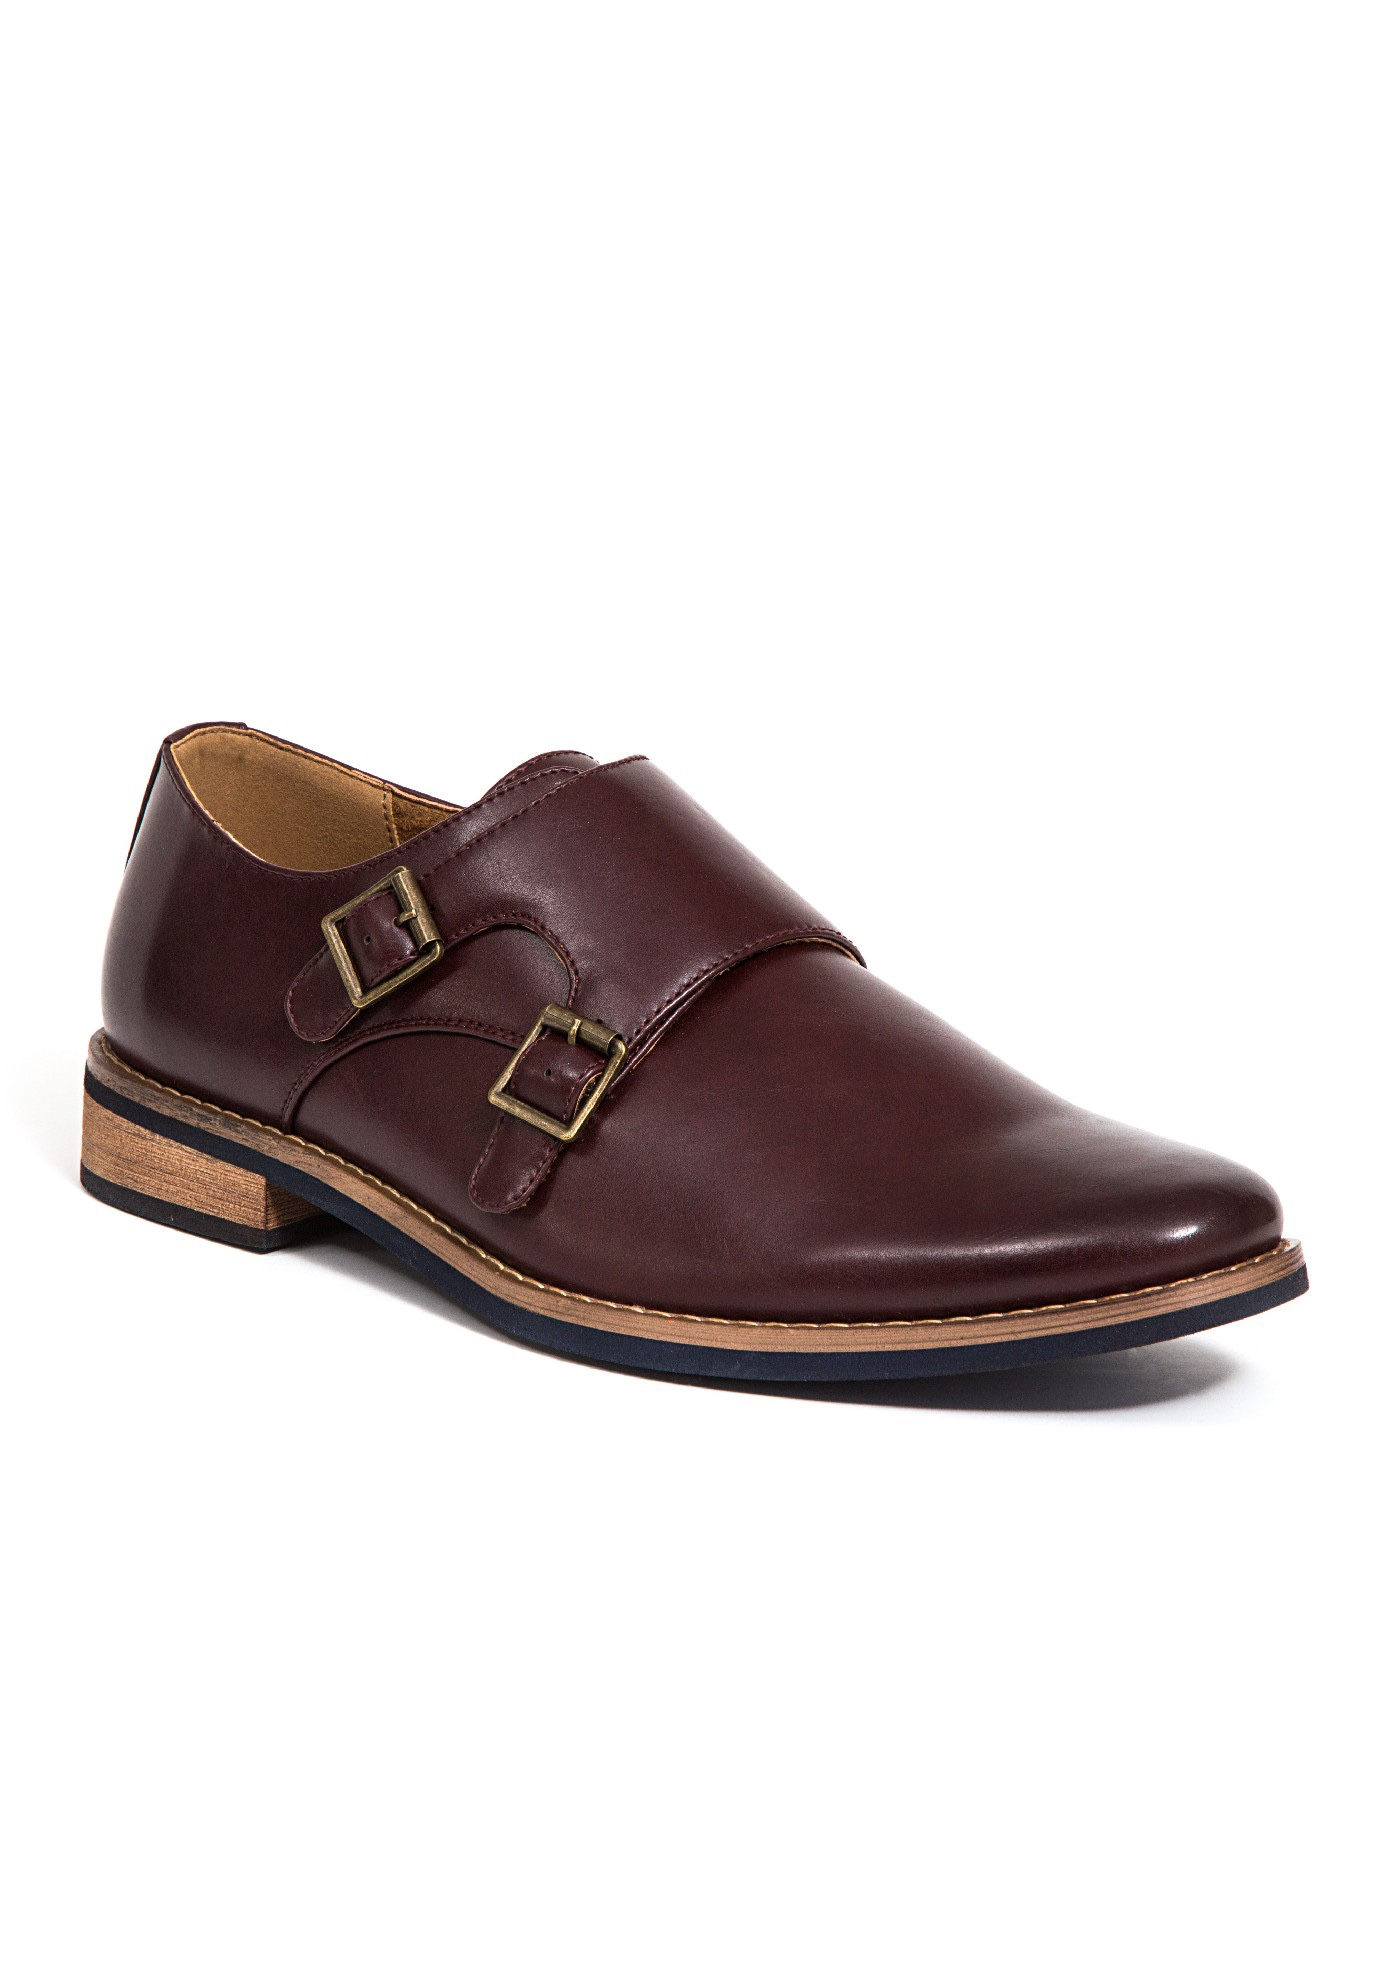 Deer Stags® Cyprus Monk Strap Shoes,